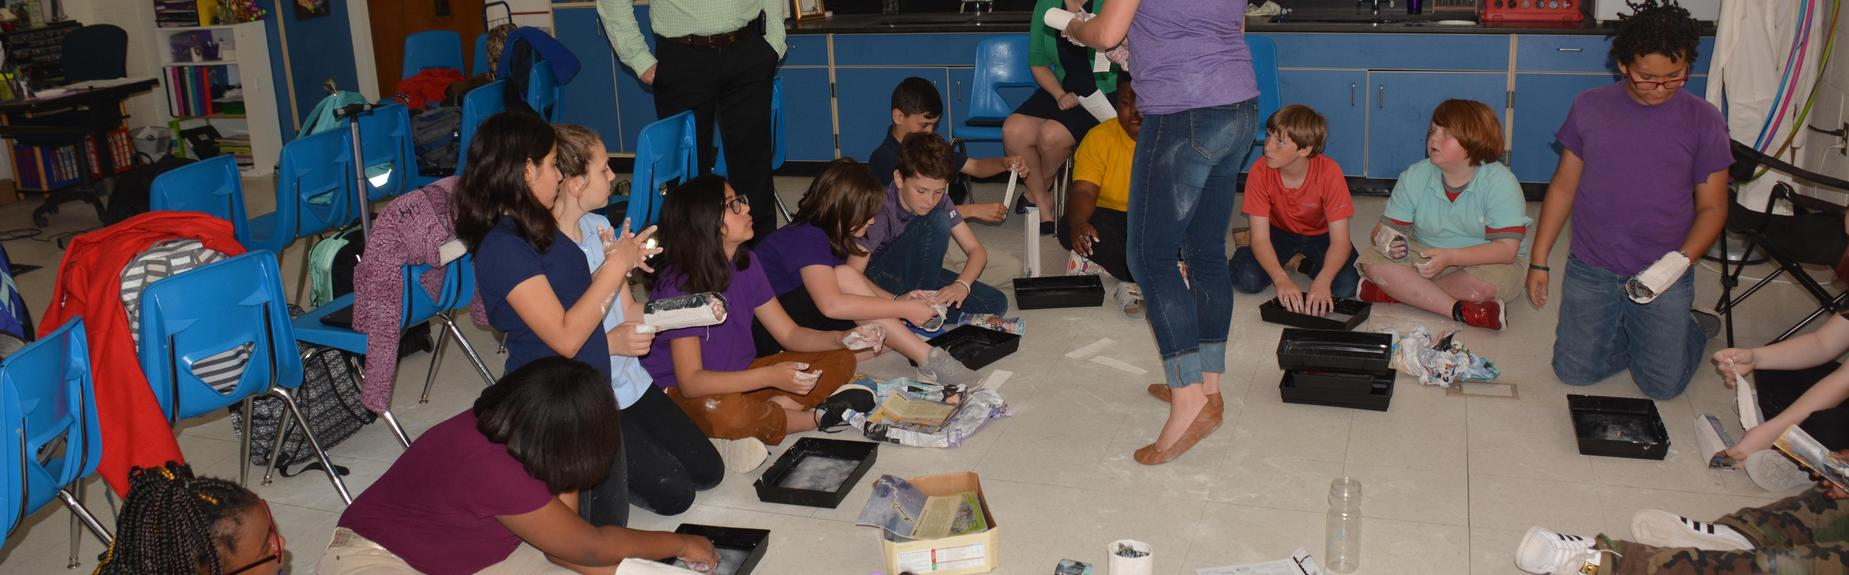 students sitting on floor in classroom doing hands-on activity